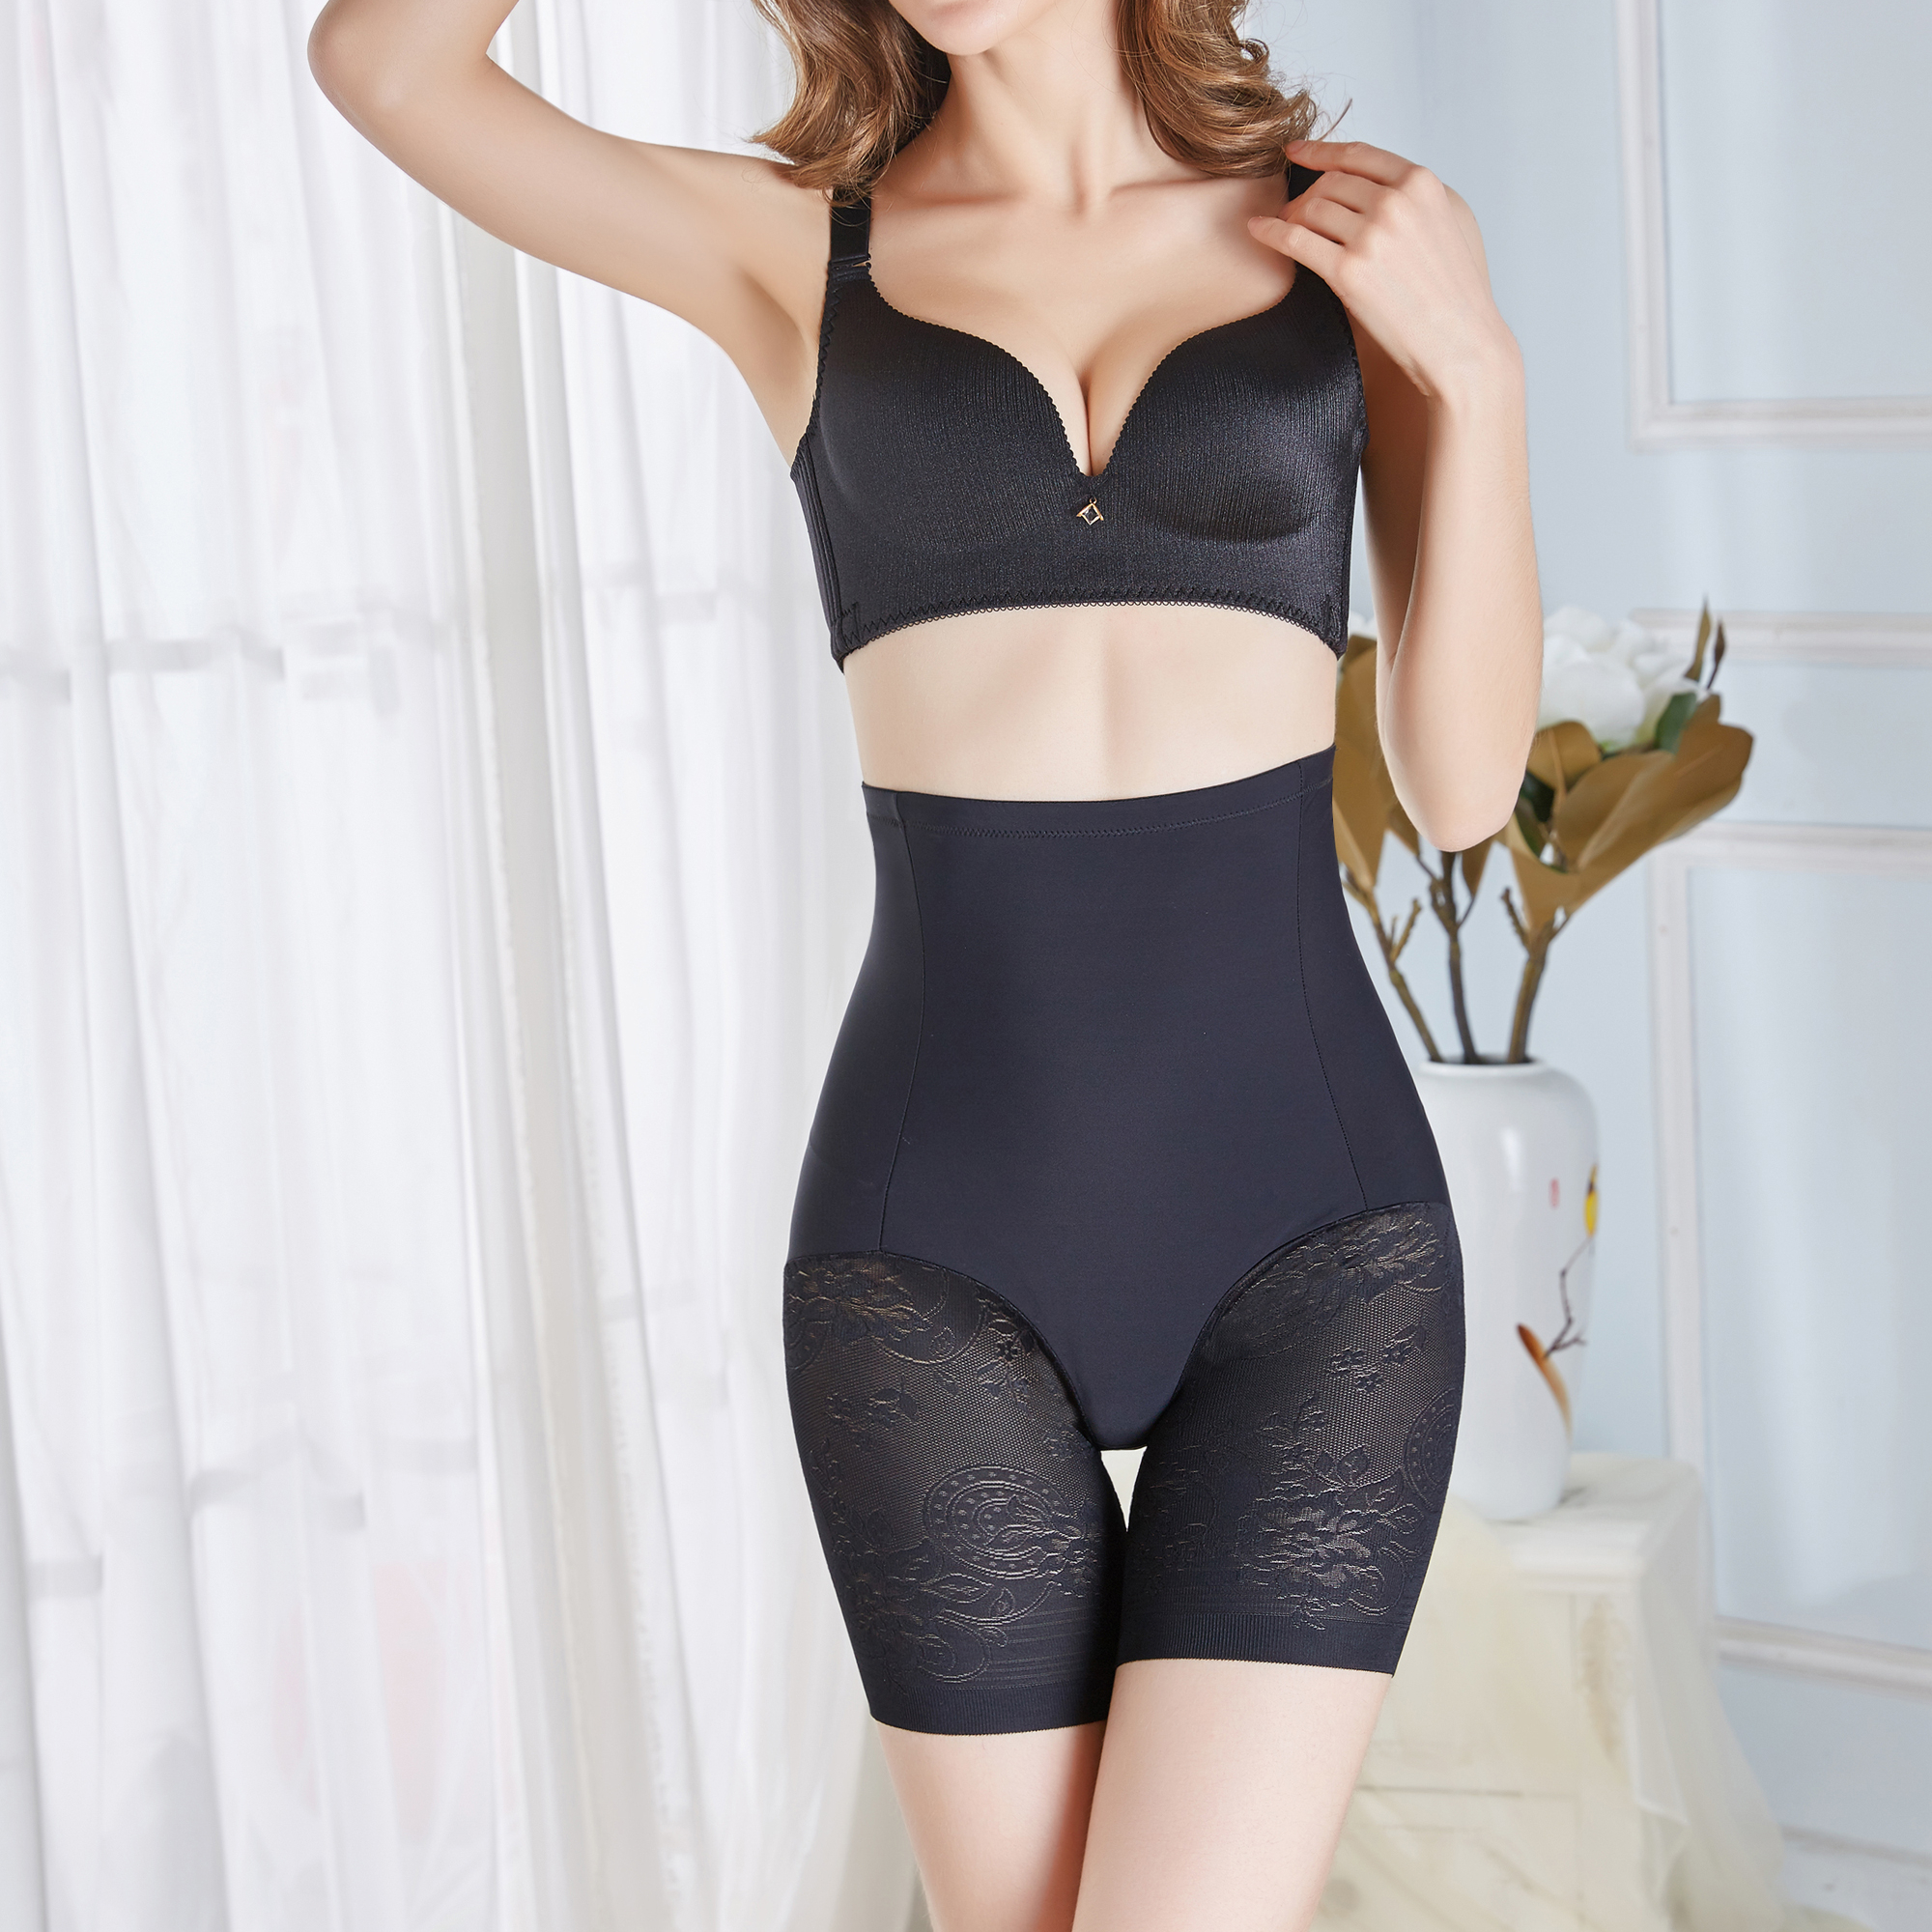 Wholesale Price High Waist Tummy Control Brazilian Butt Lift Underwear Pants